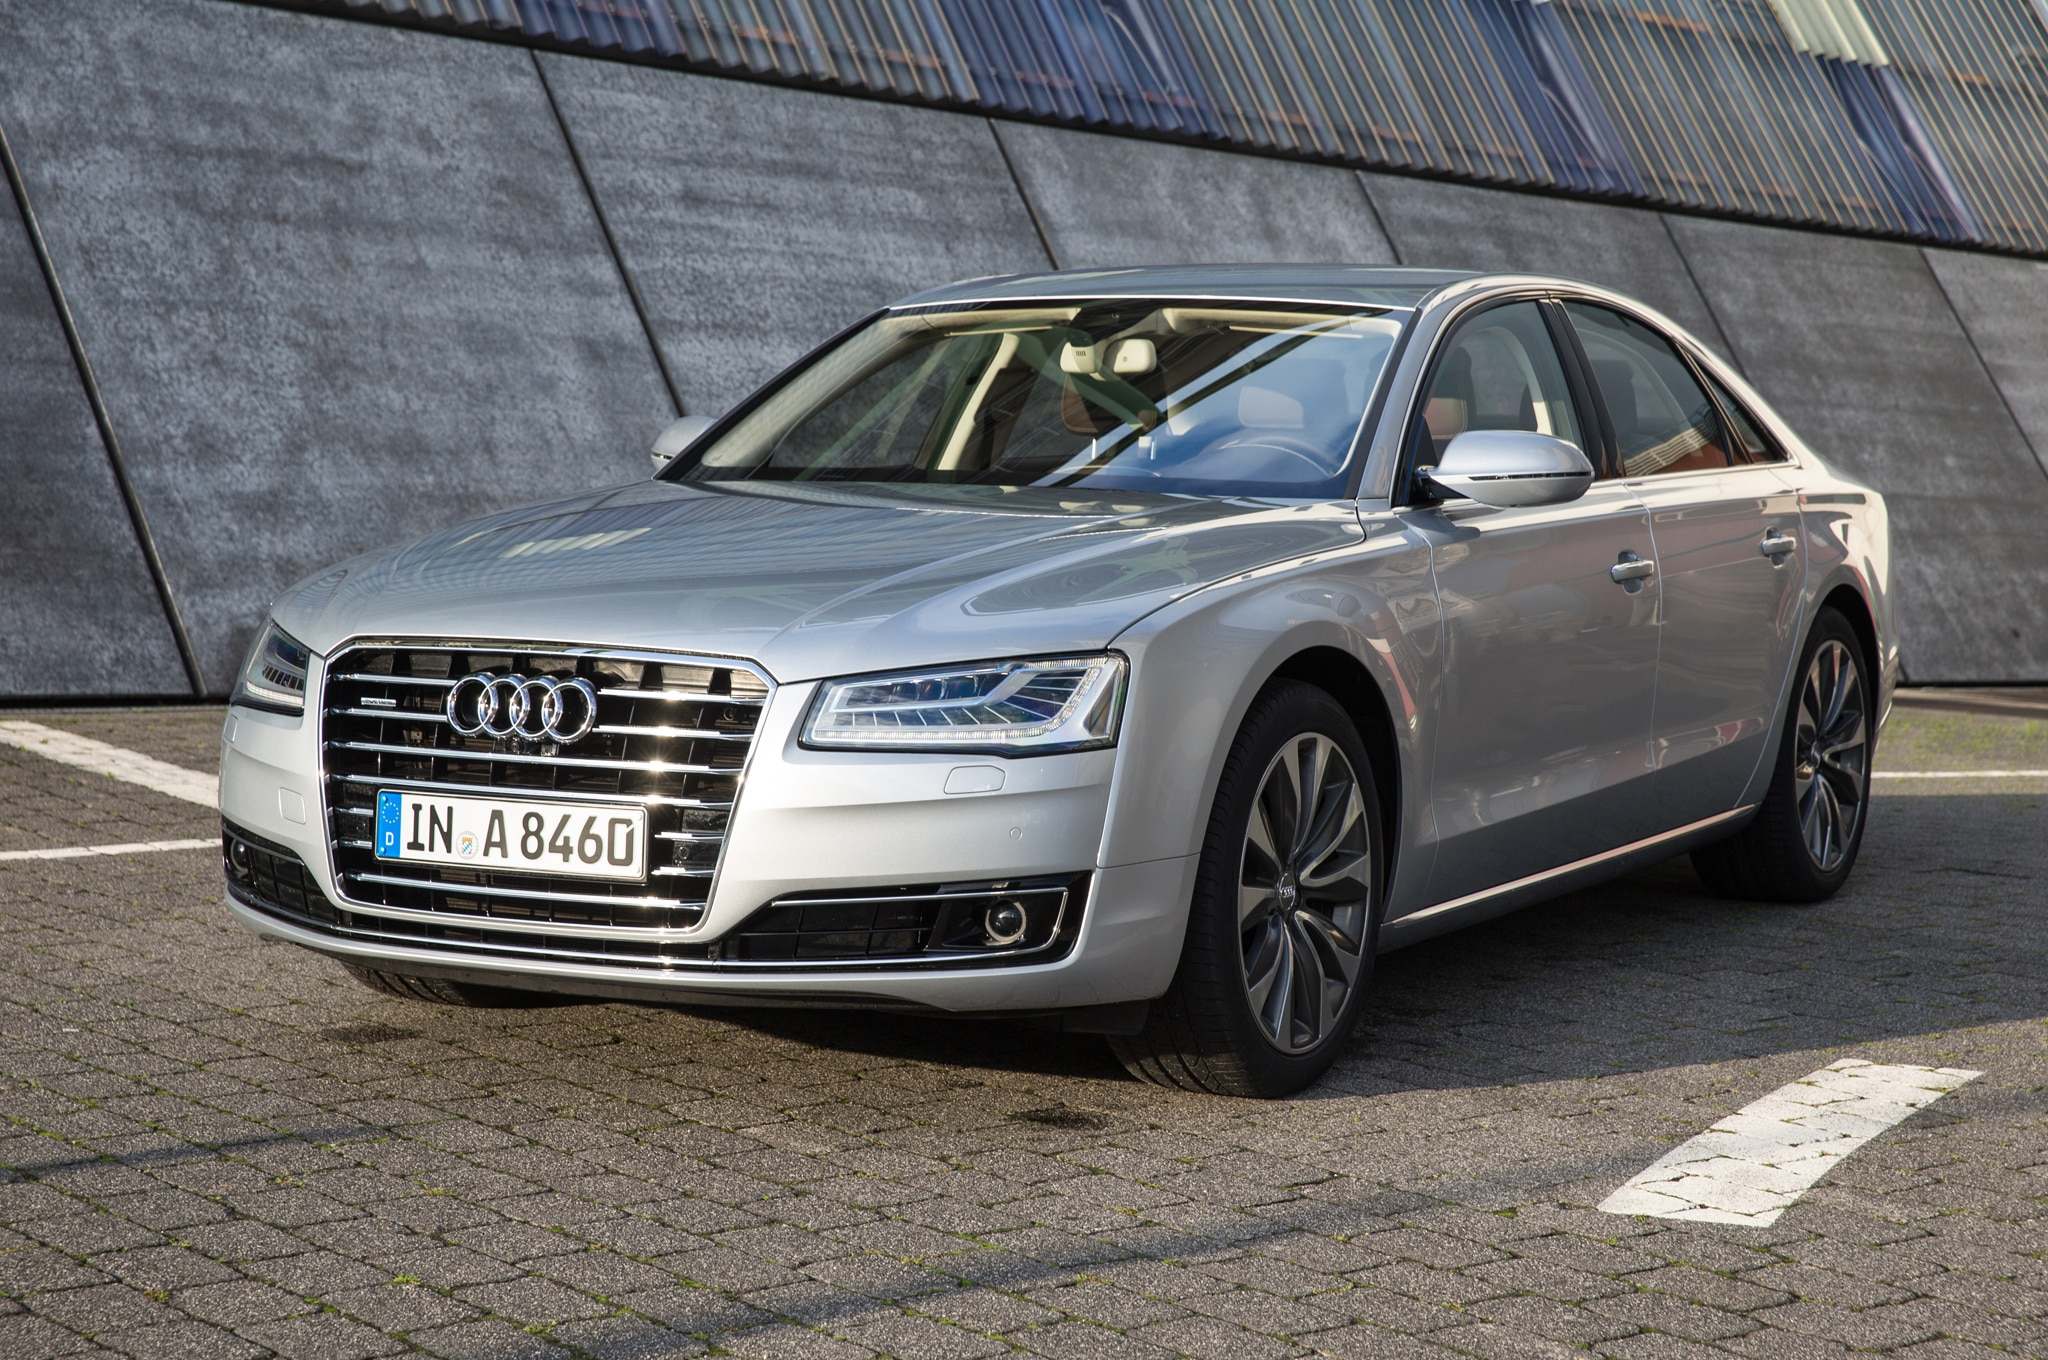 2016 audi a8 l gains 4 0t sport model with extra power visual tweaks